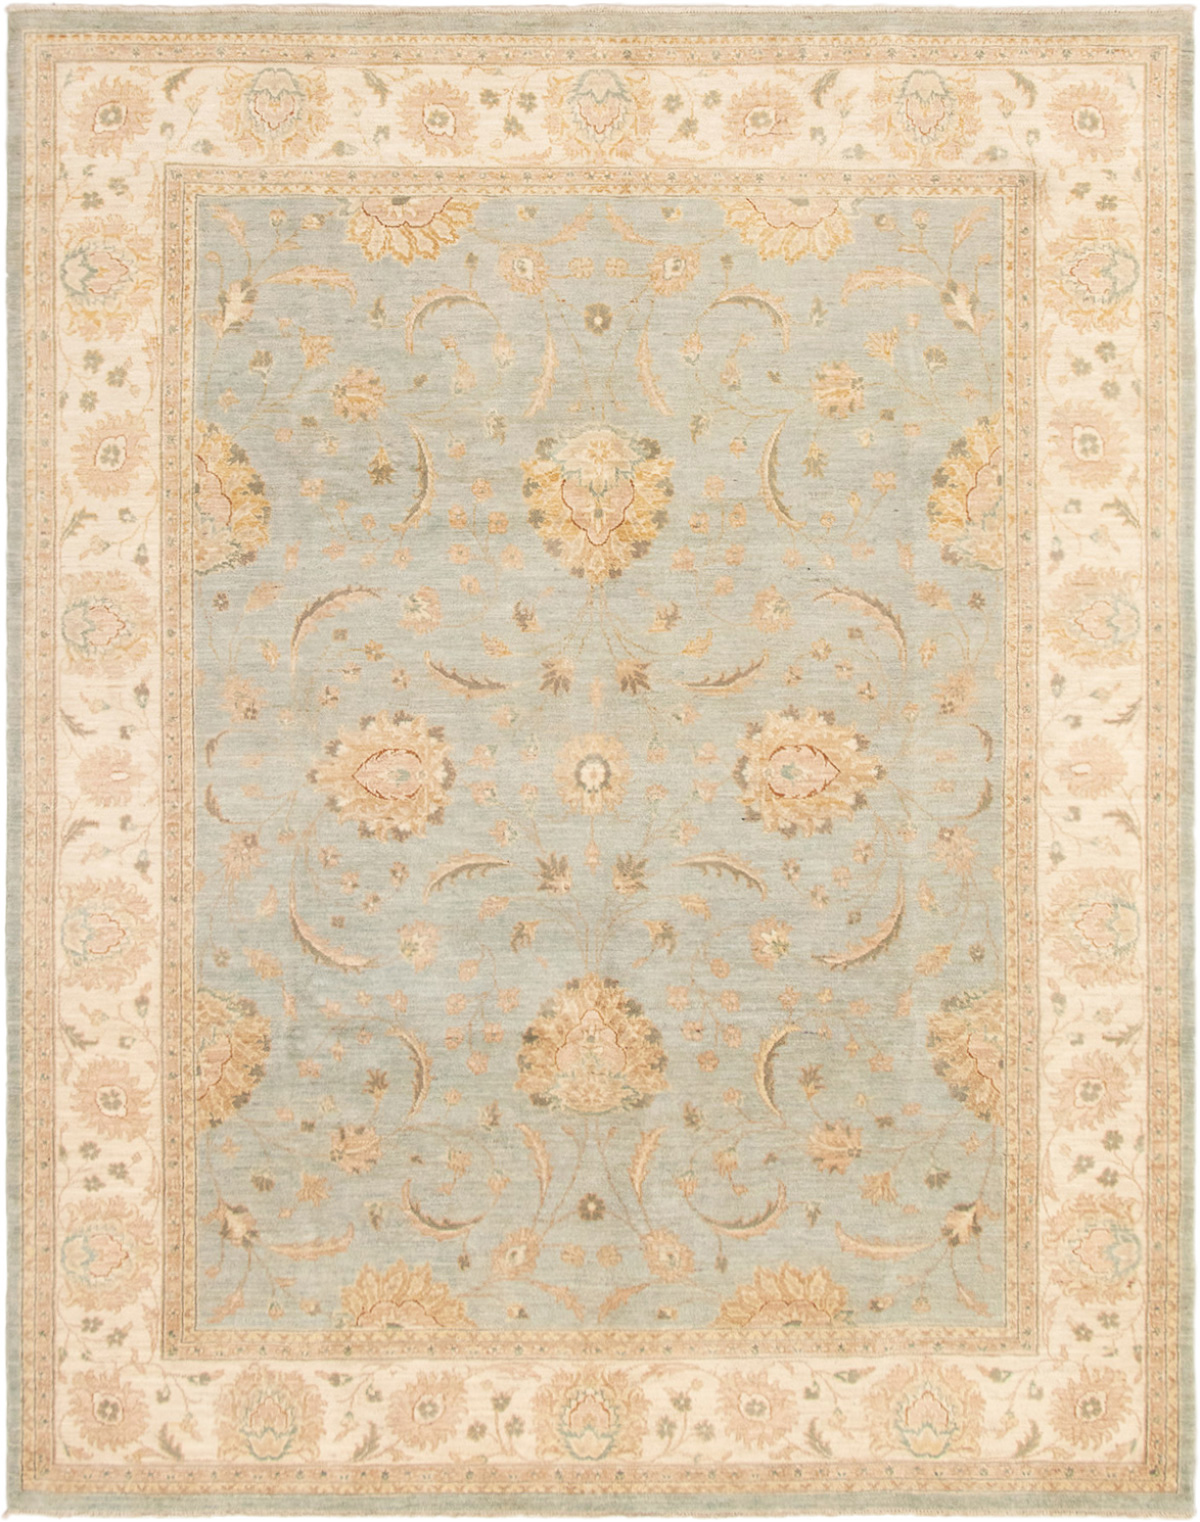 """Hand-knotted Peshawar Finest Light Blue  Wool Rug 8'1"""" x 10'2"""" Size: 8'1"""" x 10'2"""""""